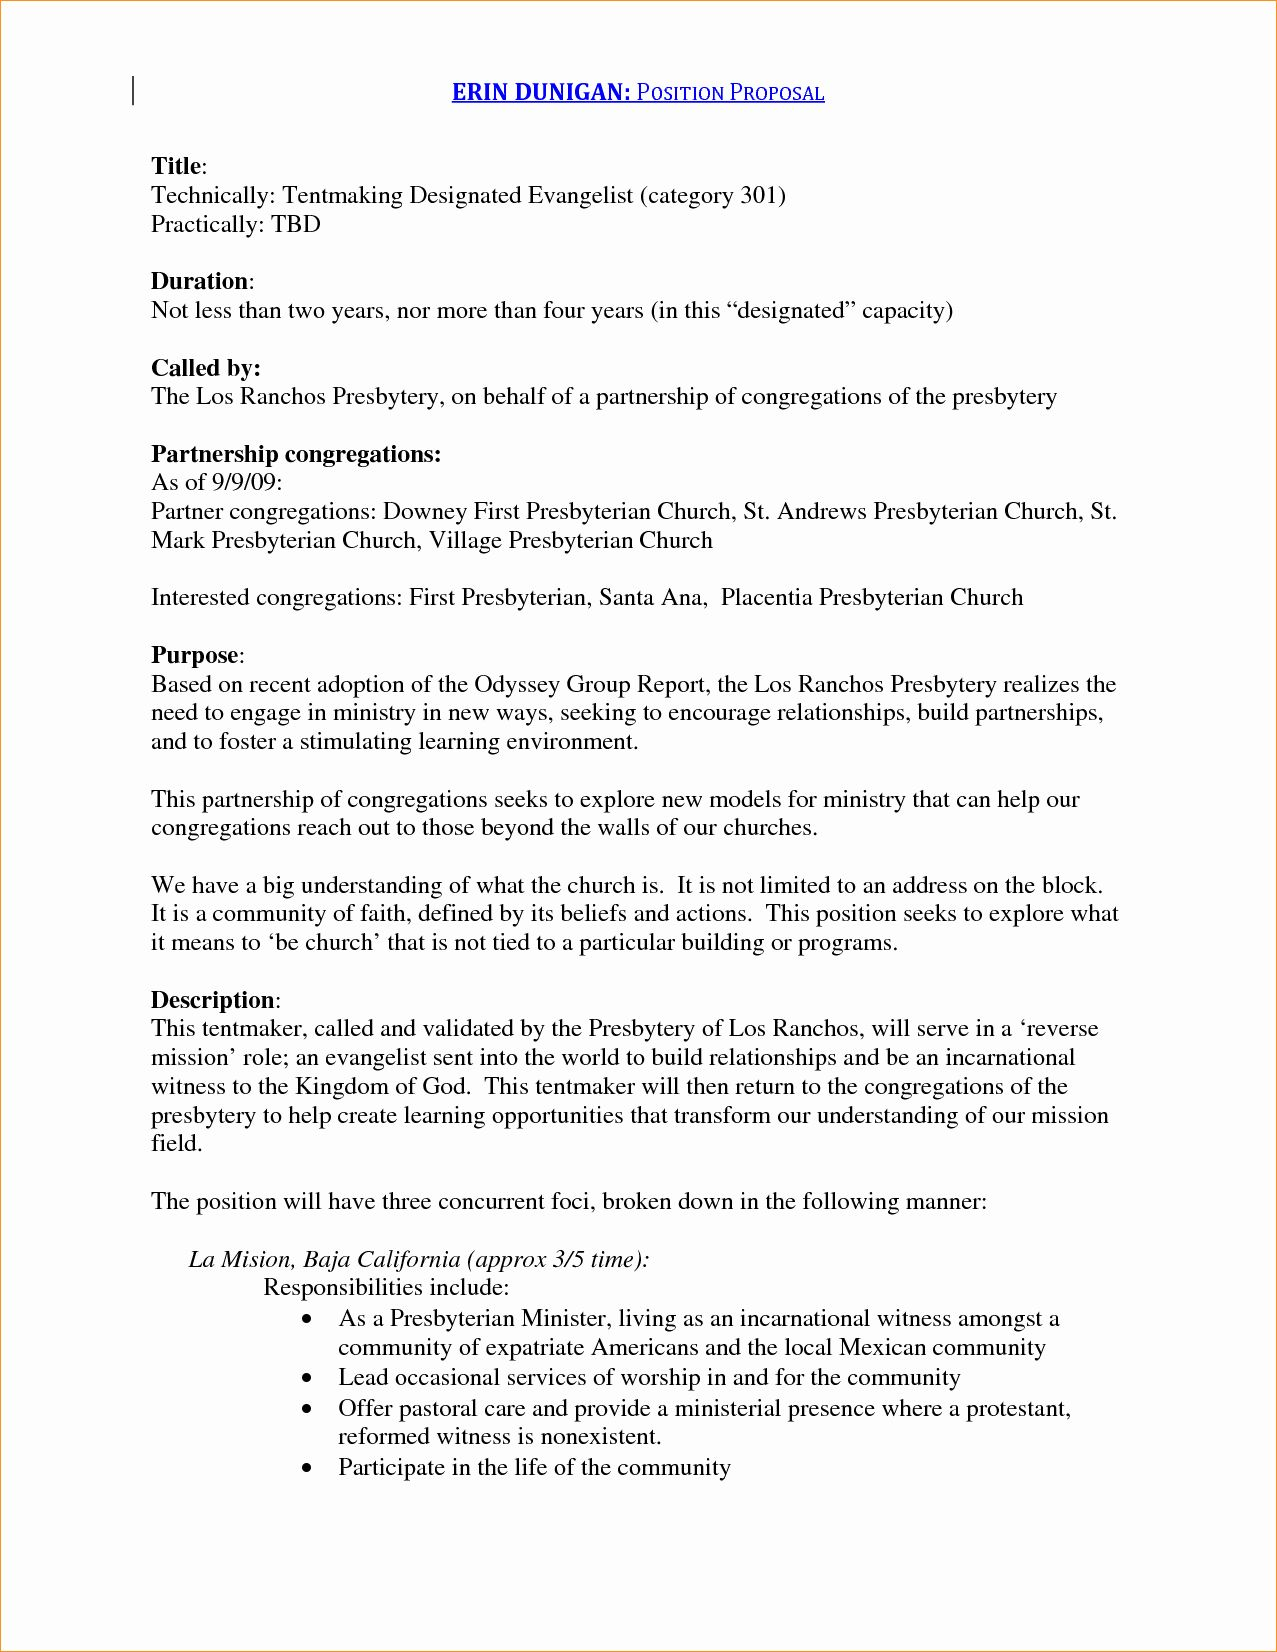 24 New Position Proposal Template In 2020 Proposal Templates